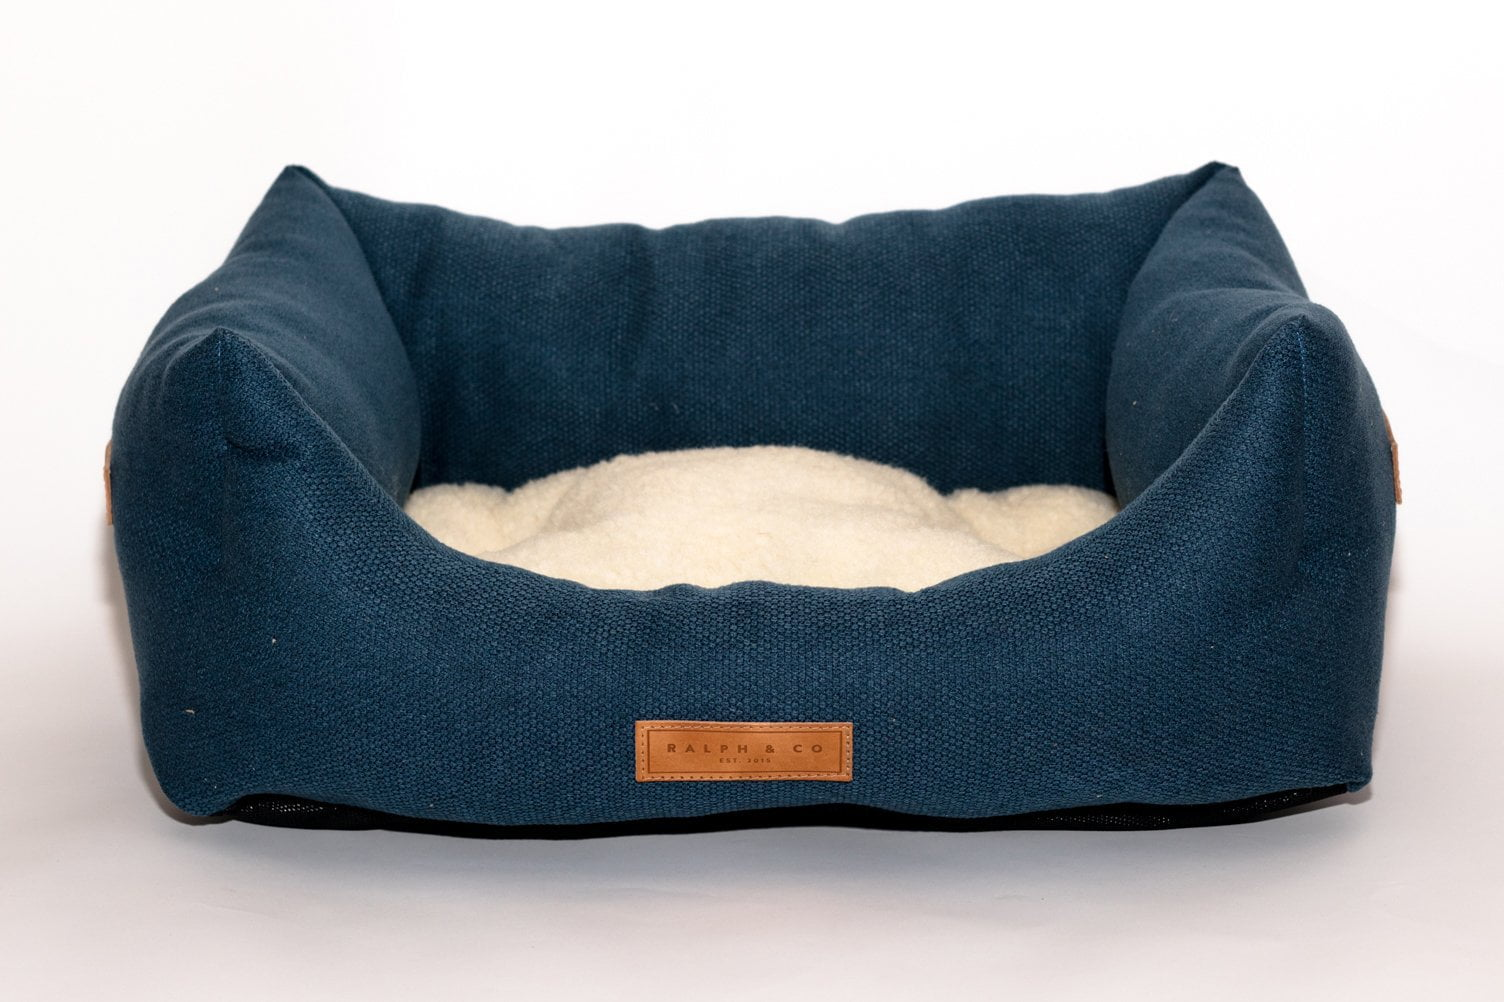 Fletcher Of London Premium Pet Beds Feeding Clothing Accessories